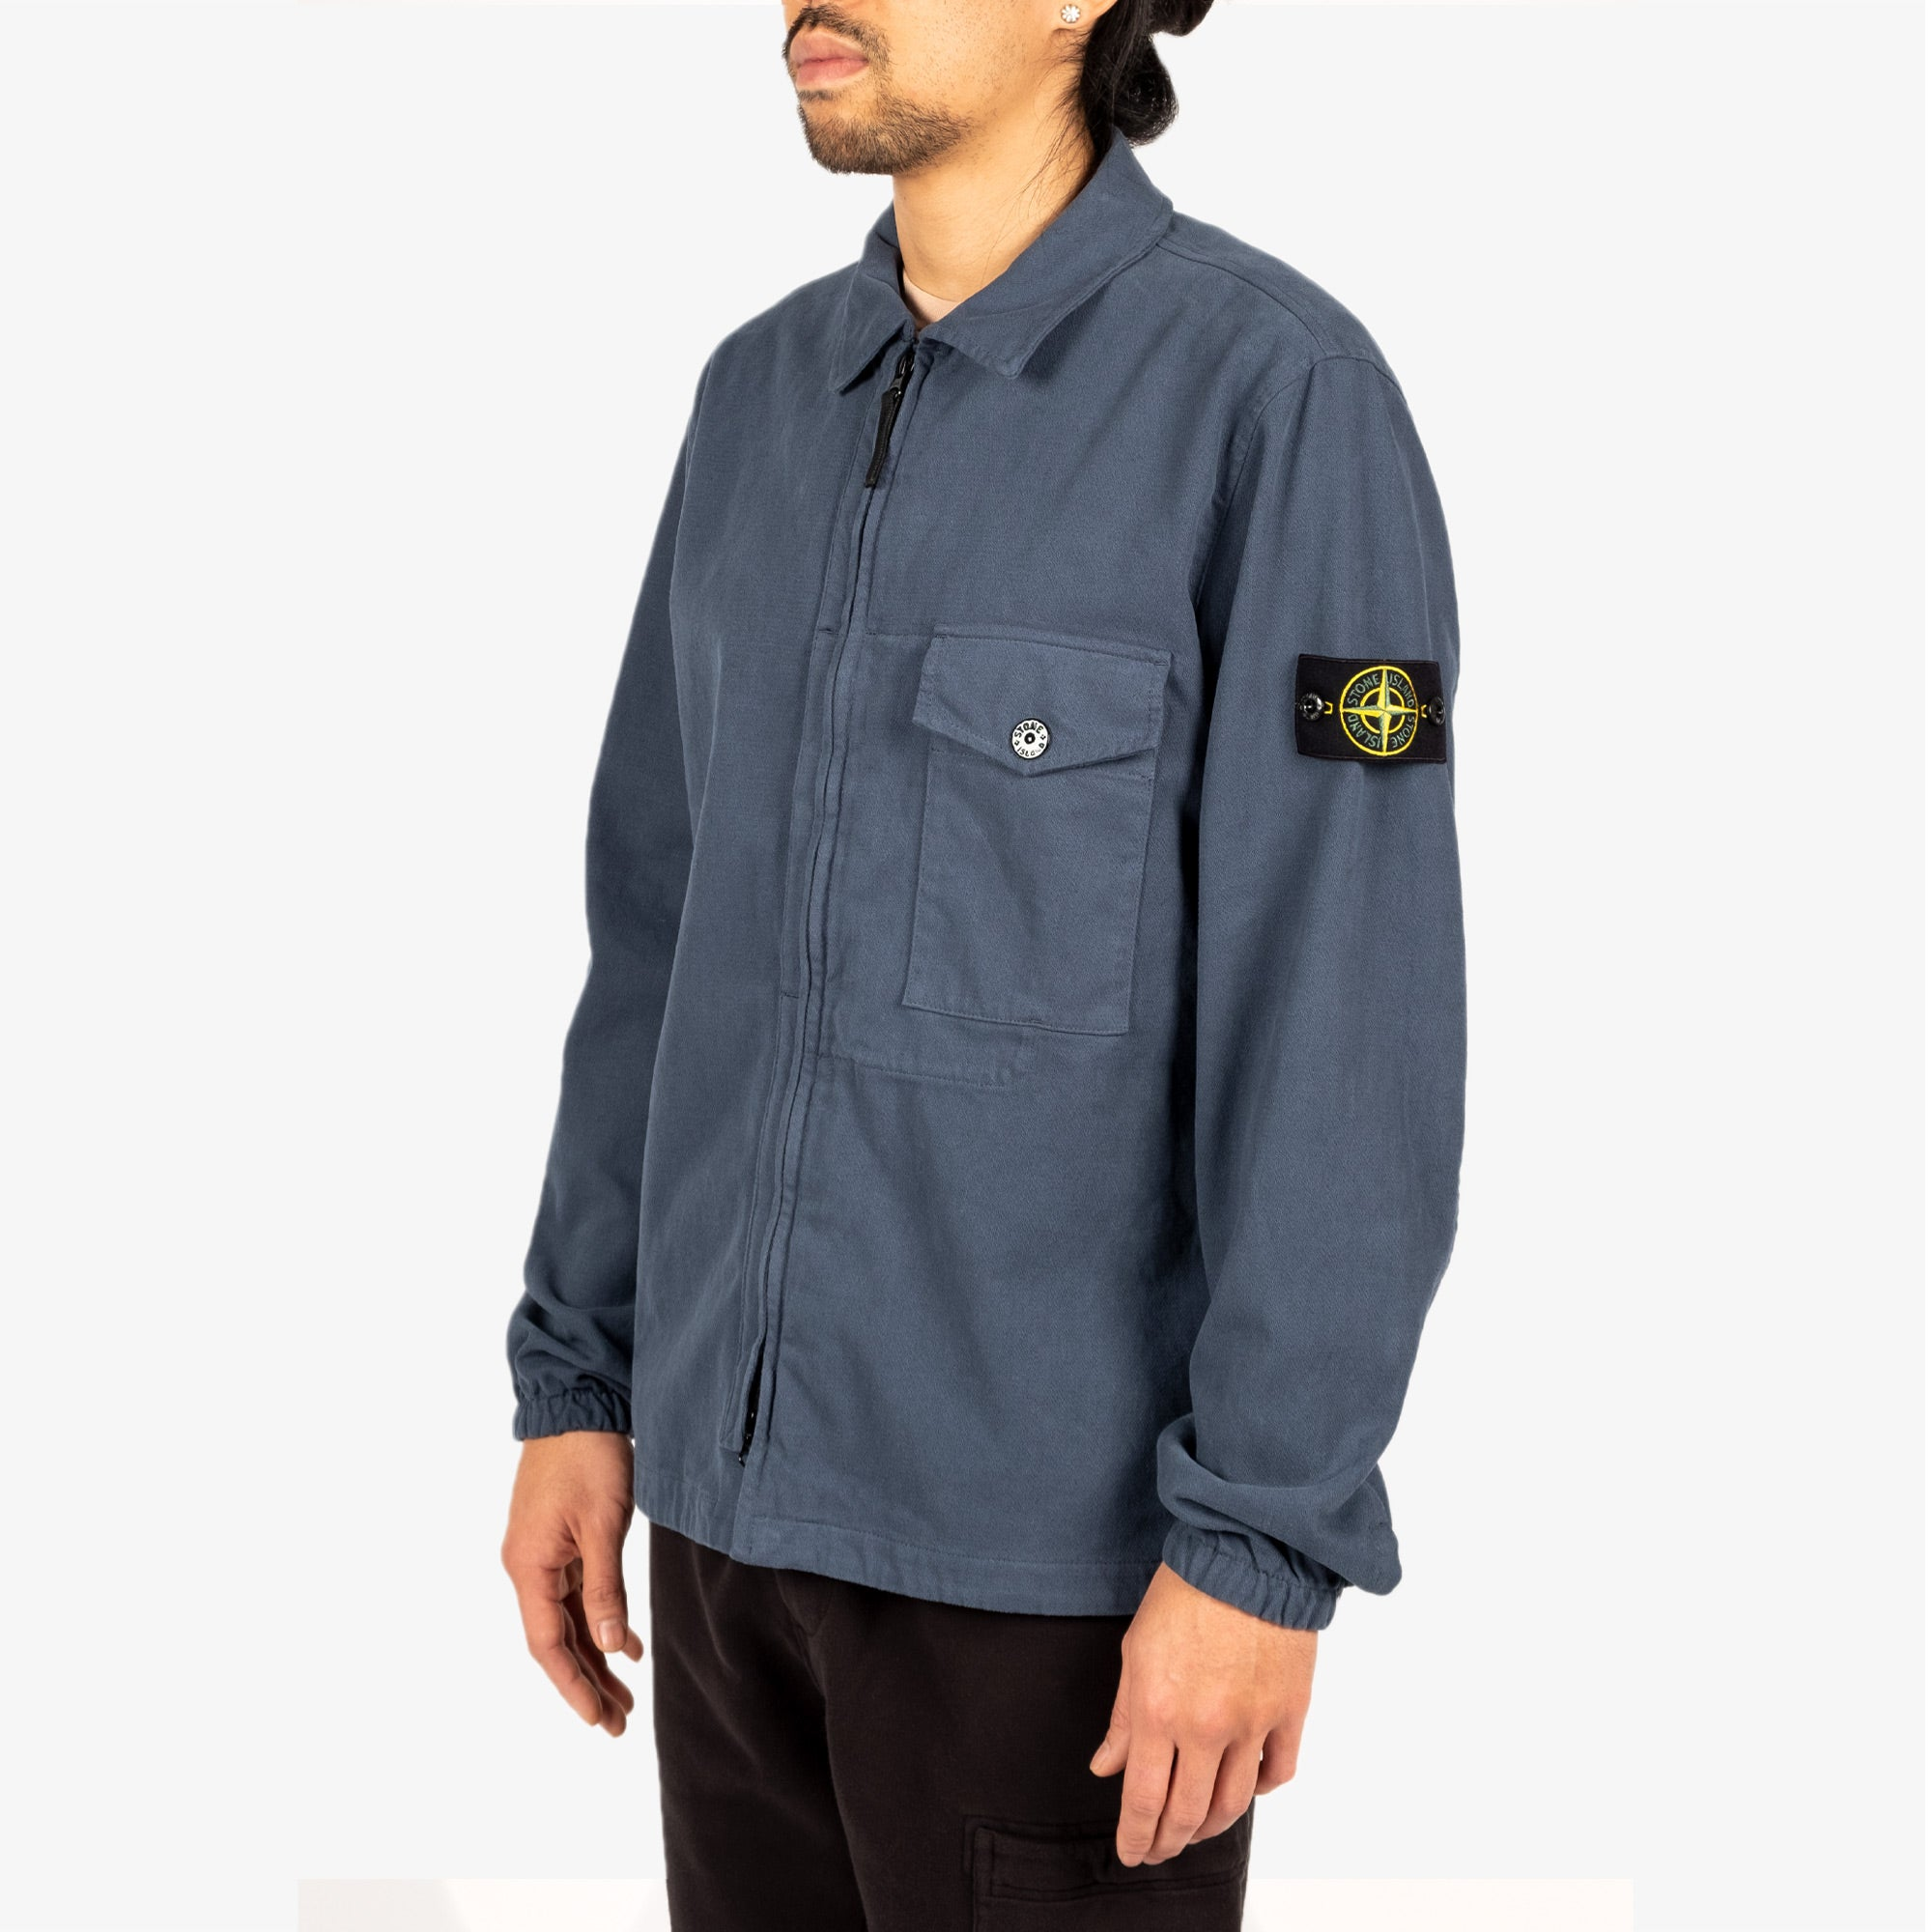 Stone Island Textured Brushed Recycled Cotton Overshirt 10704 - Cobalt Blue 5